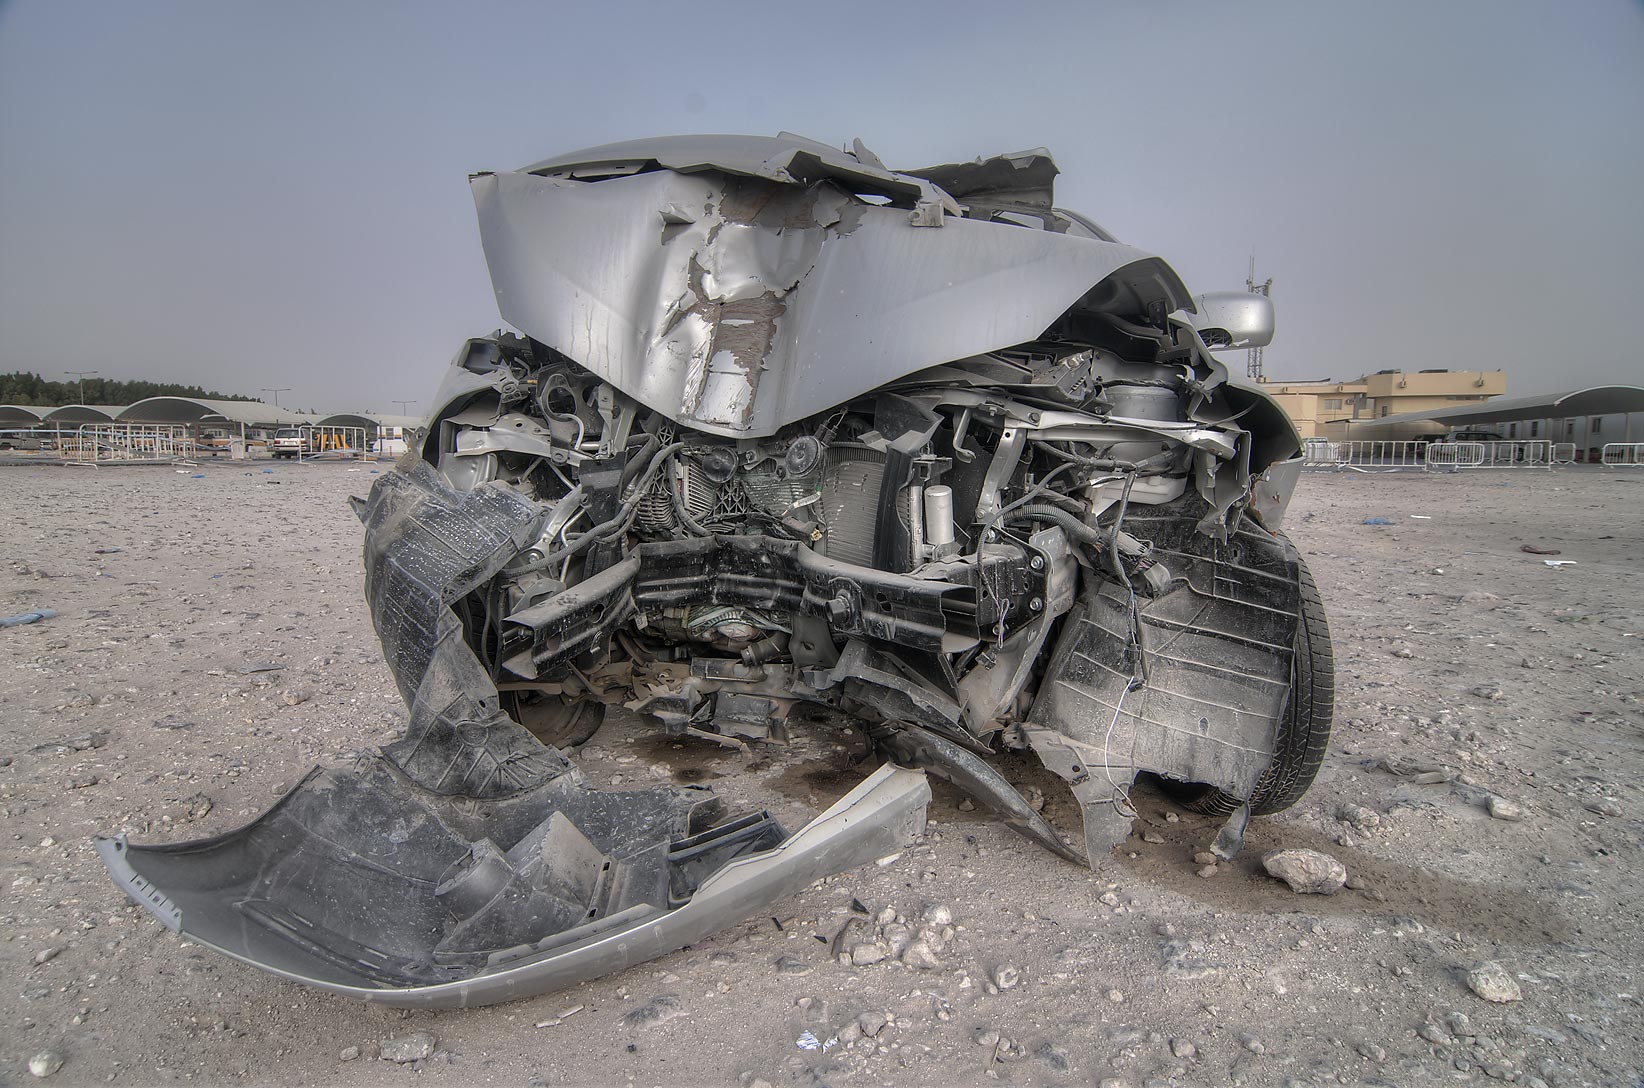 Damaged car near Al Mamoura Traffic Police and...Division, Traffic Patrol). Doha, Qatar